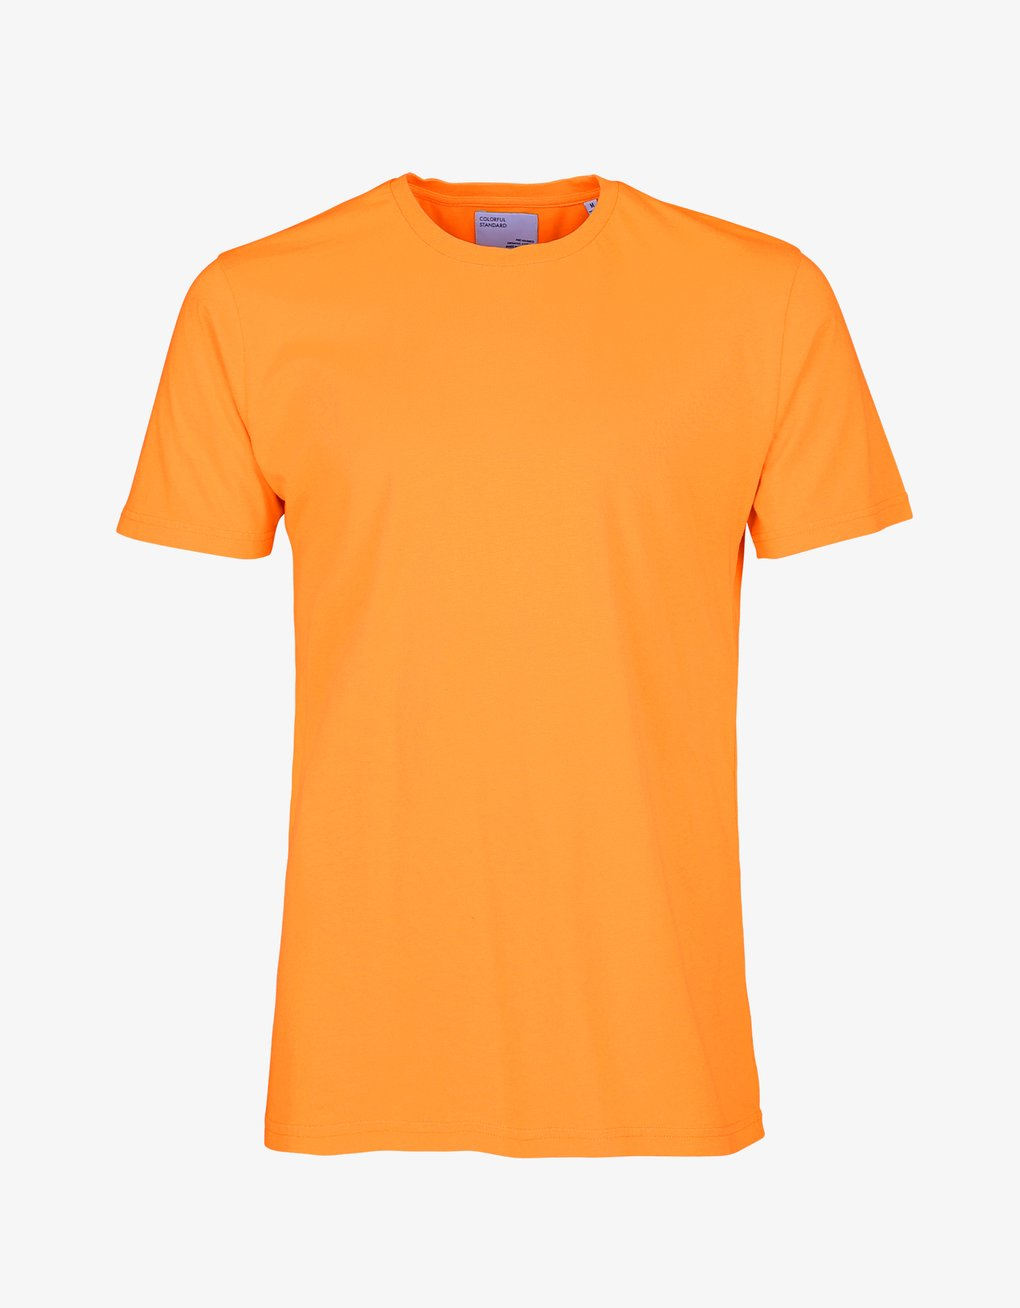 COLORFUL STANDARD | Classic Organic T-shirt | Sunny Orange - LONDØNWORKS